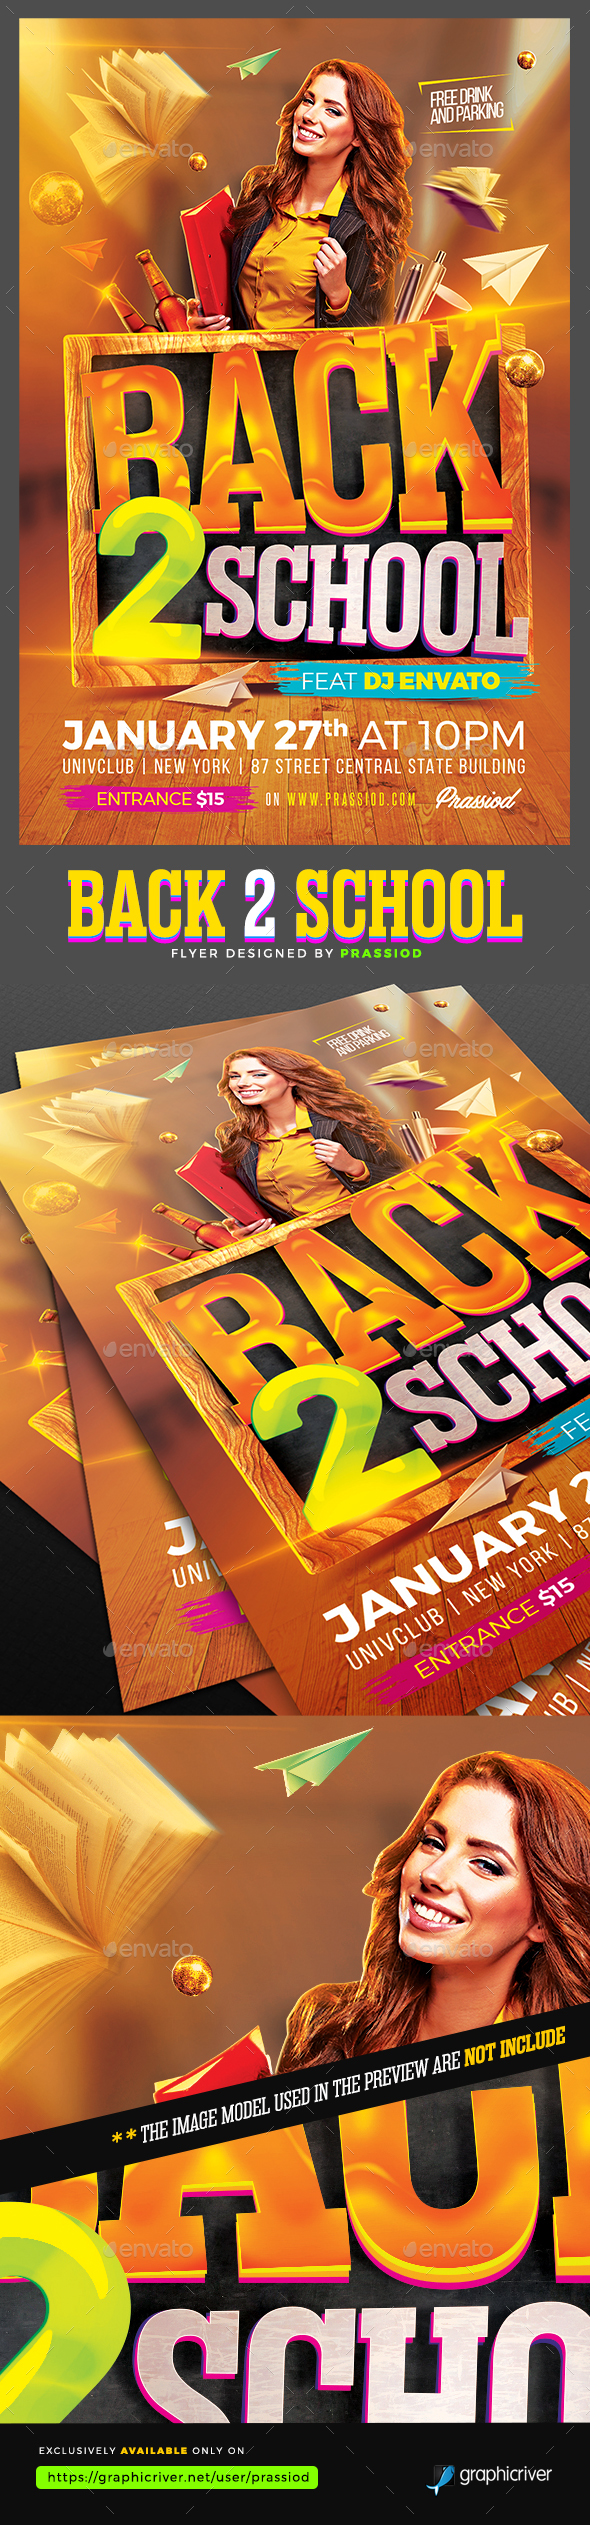 Back 2 School Flyer Template - Clubs & Parties Events